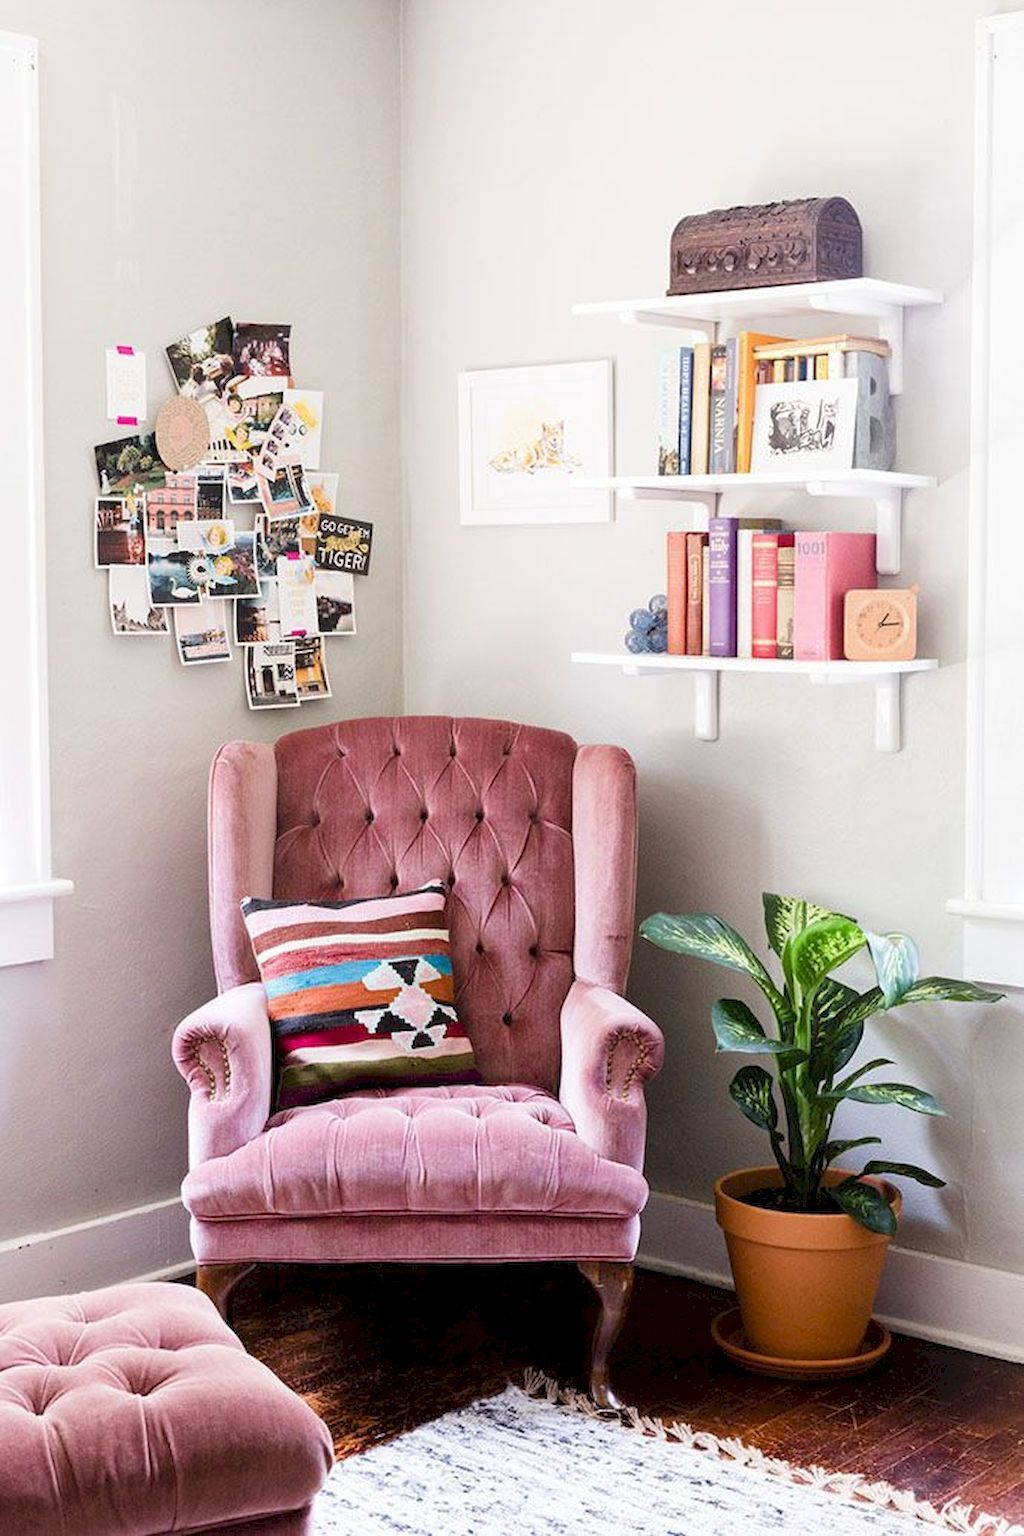 Awesome 95 Cozy Apartment Decorating Ideas On A Budget Homespecially